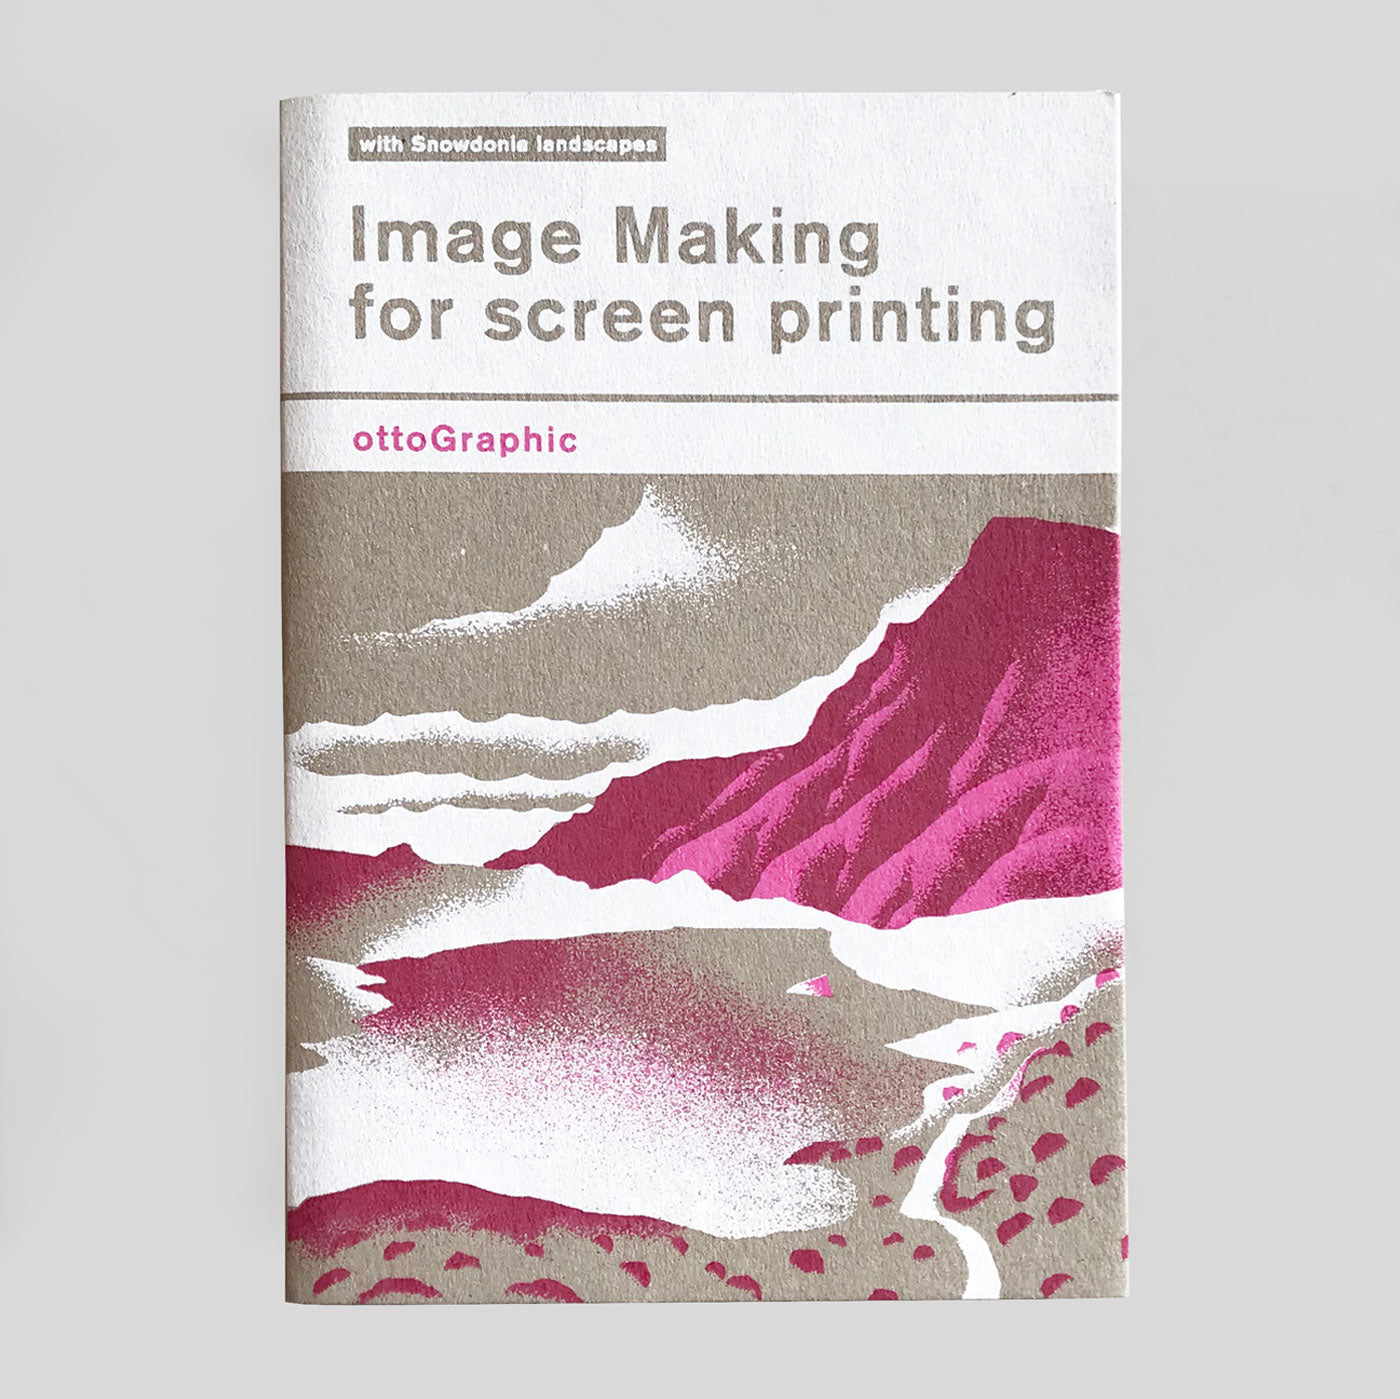 Image-Making For Screen Printing